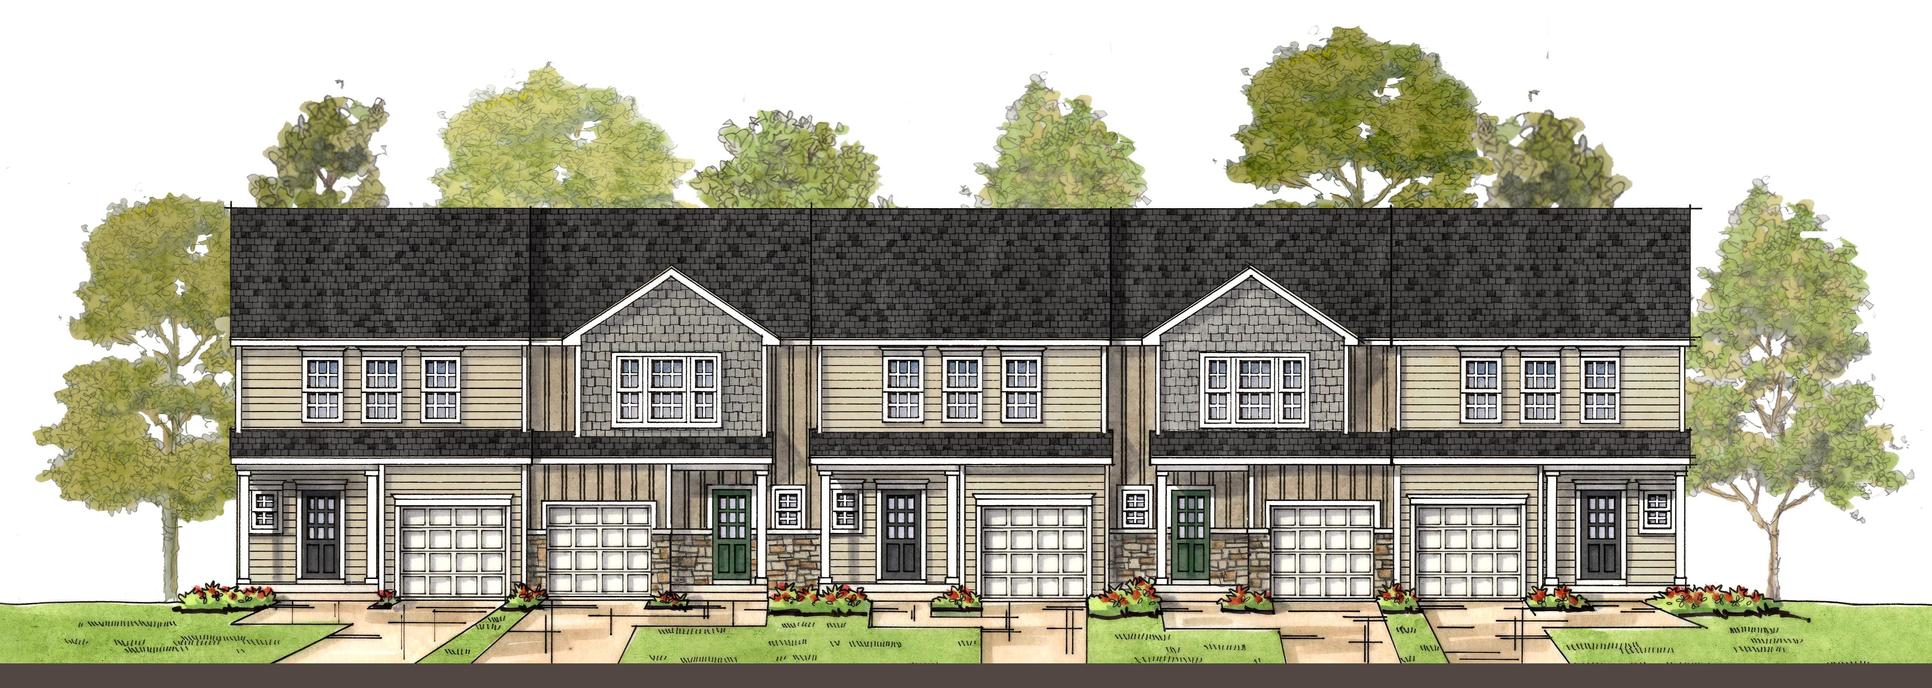 Townhome:Townhome